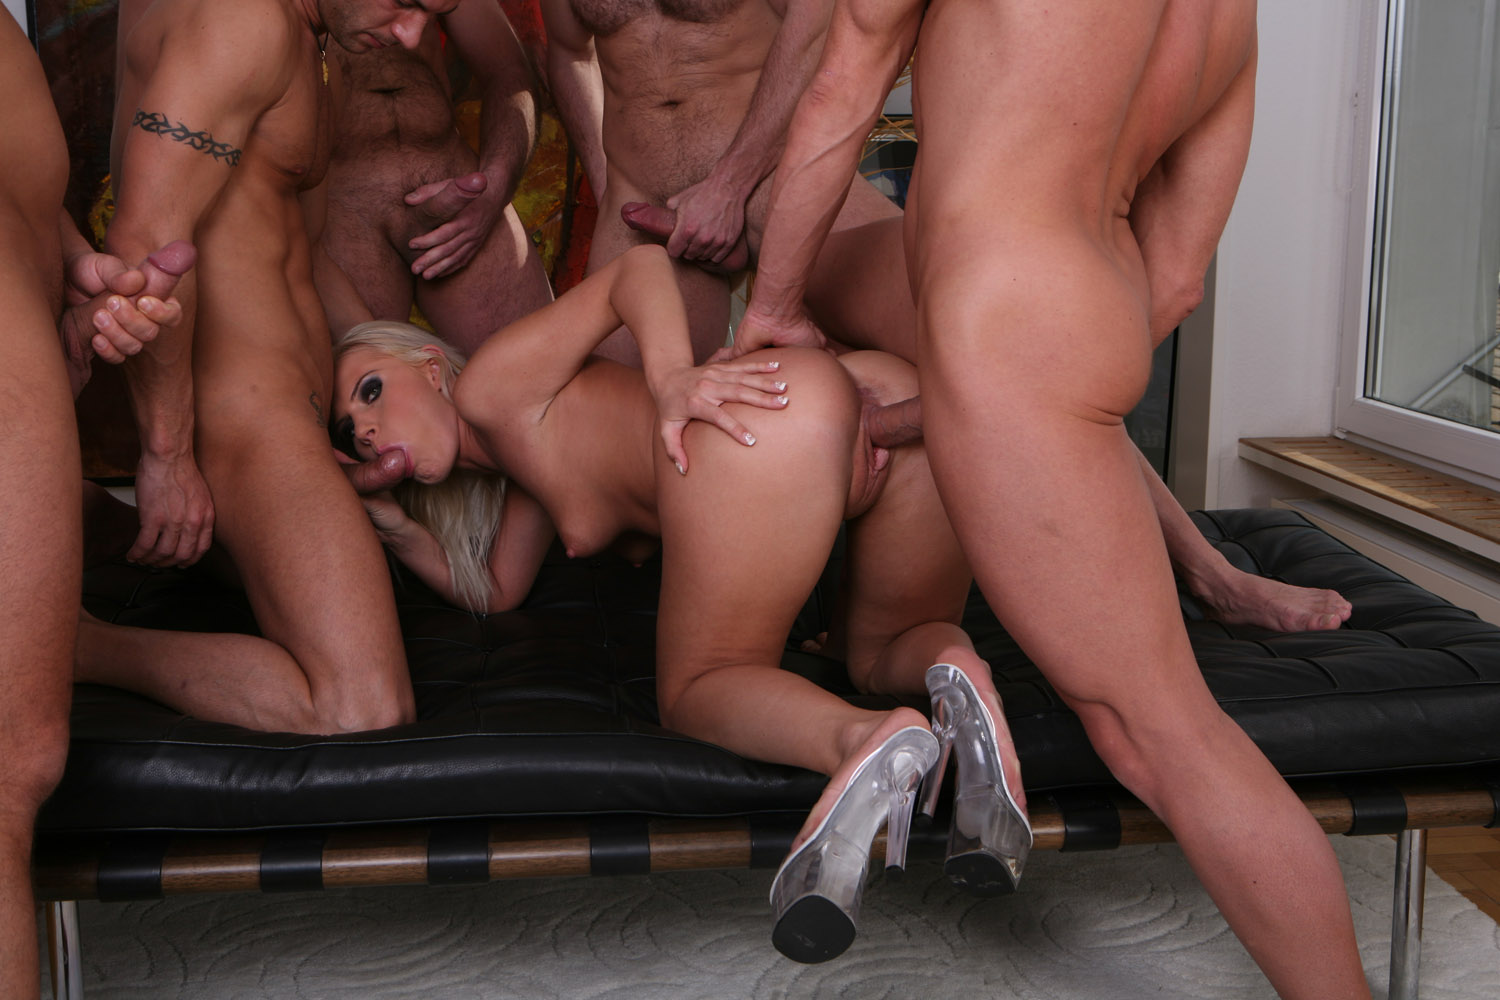 gangbang video dildo shop